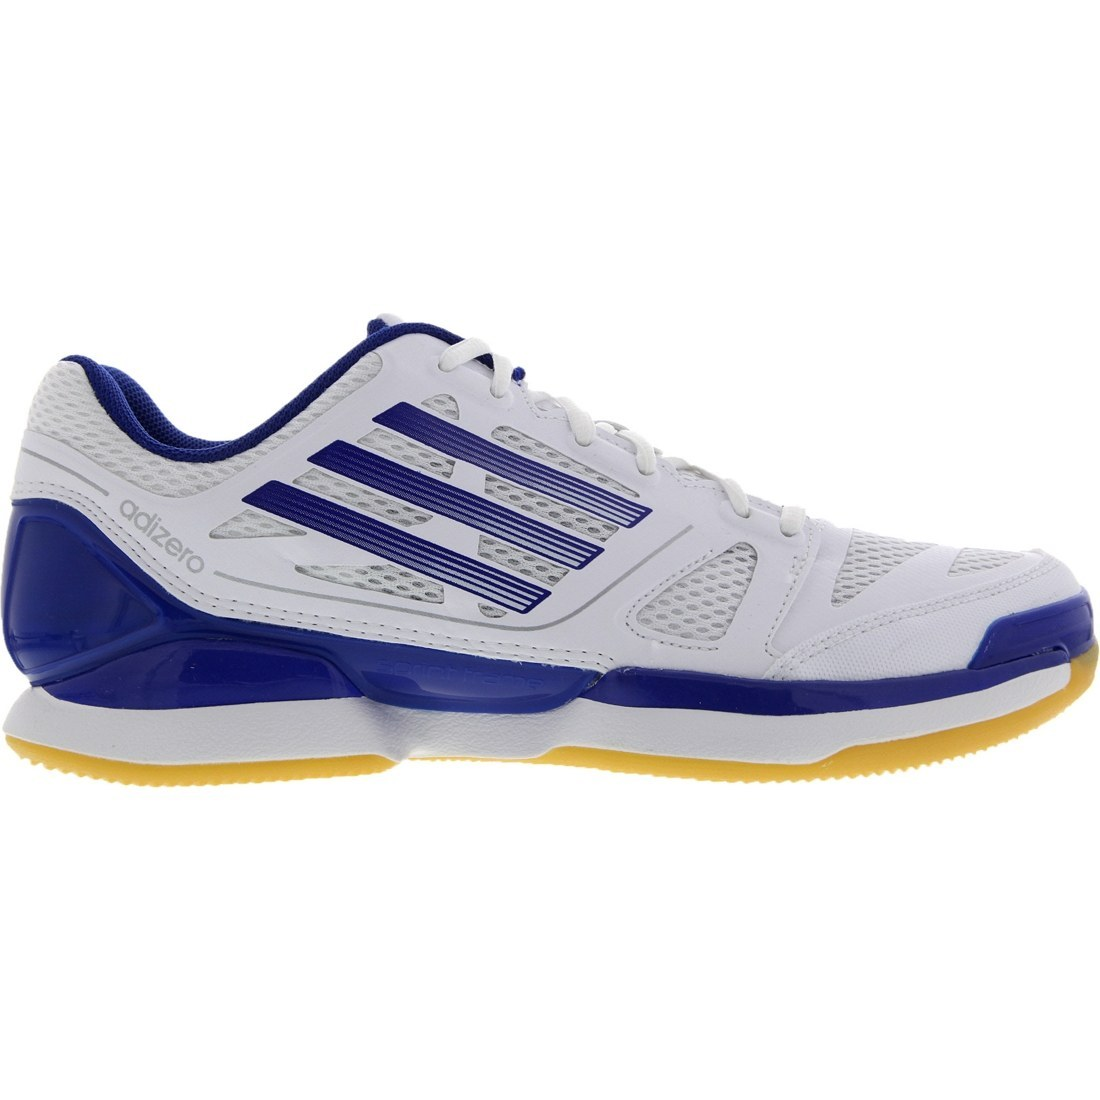 Adidas Adizero Crazy Volley Men - White Blue